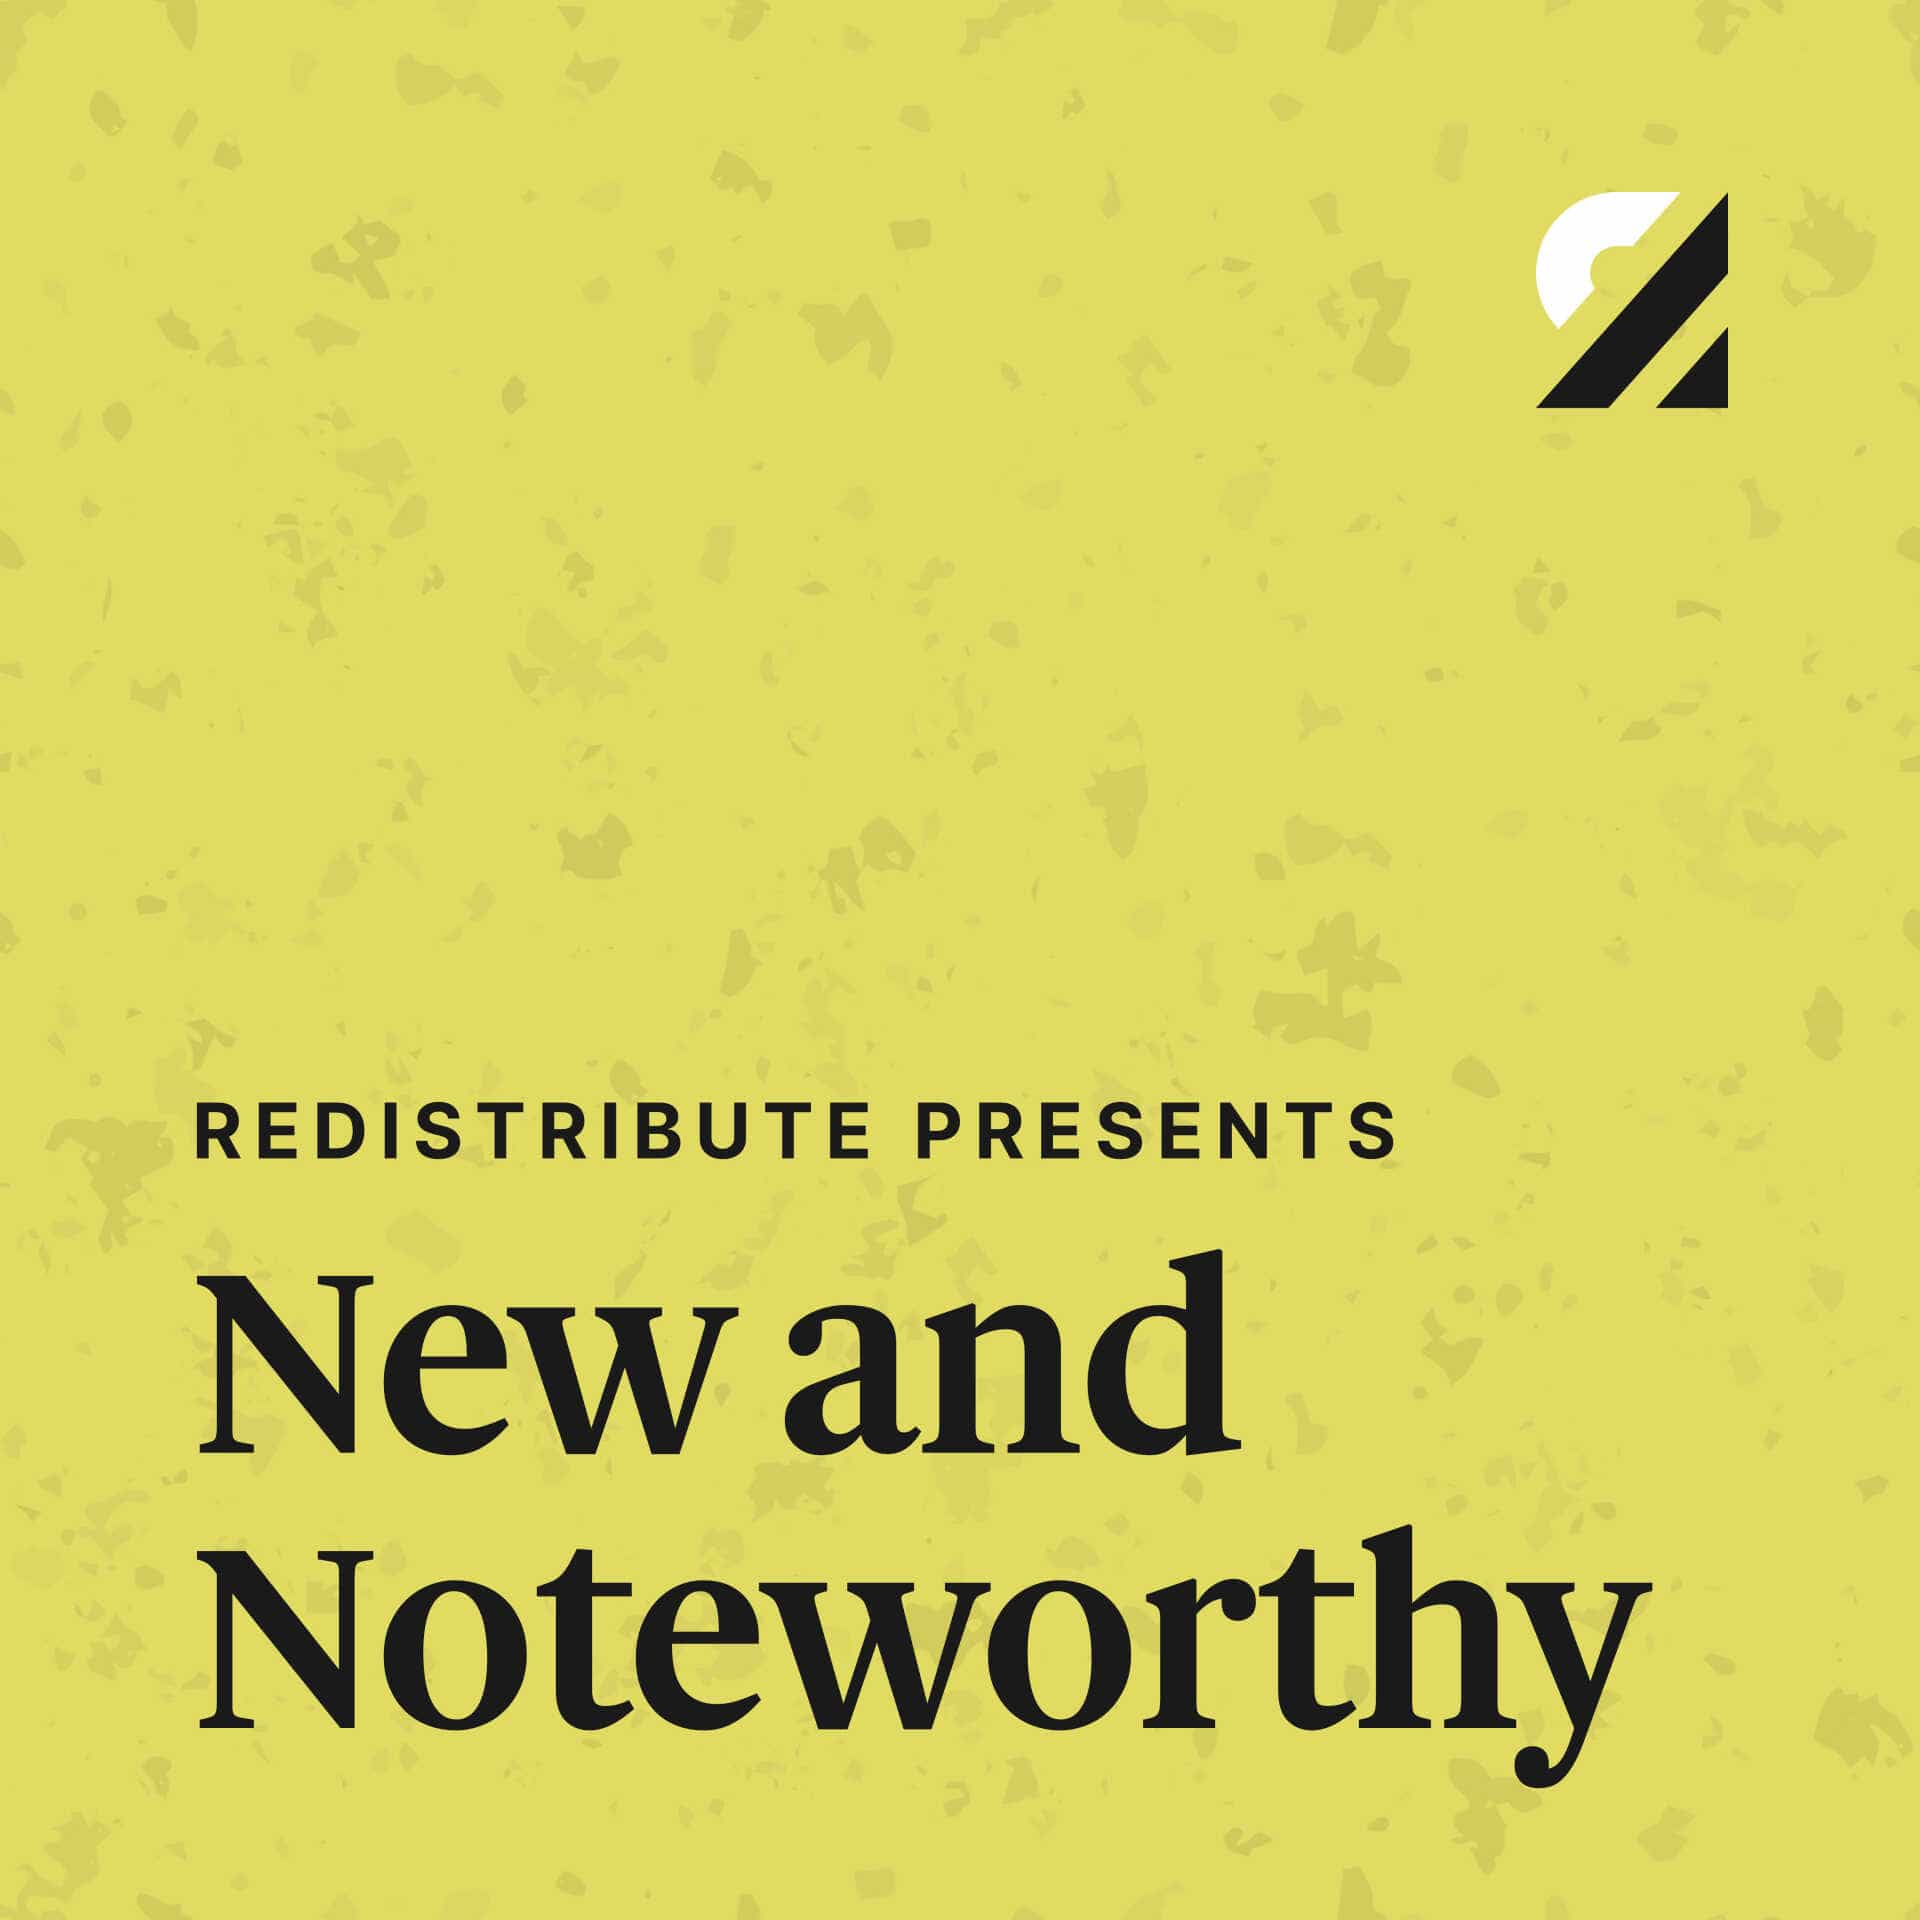 Cover image for the playlist Redistribute Presents New and Noteworthy